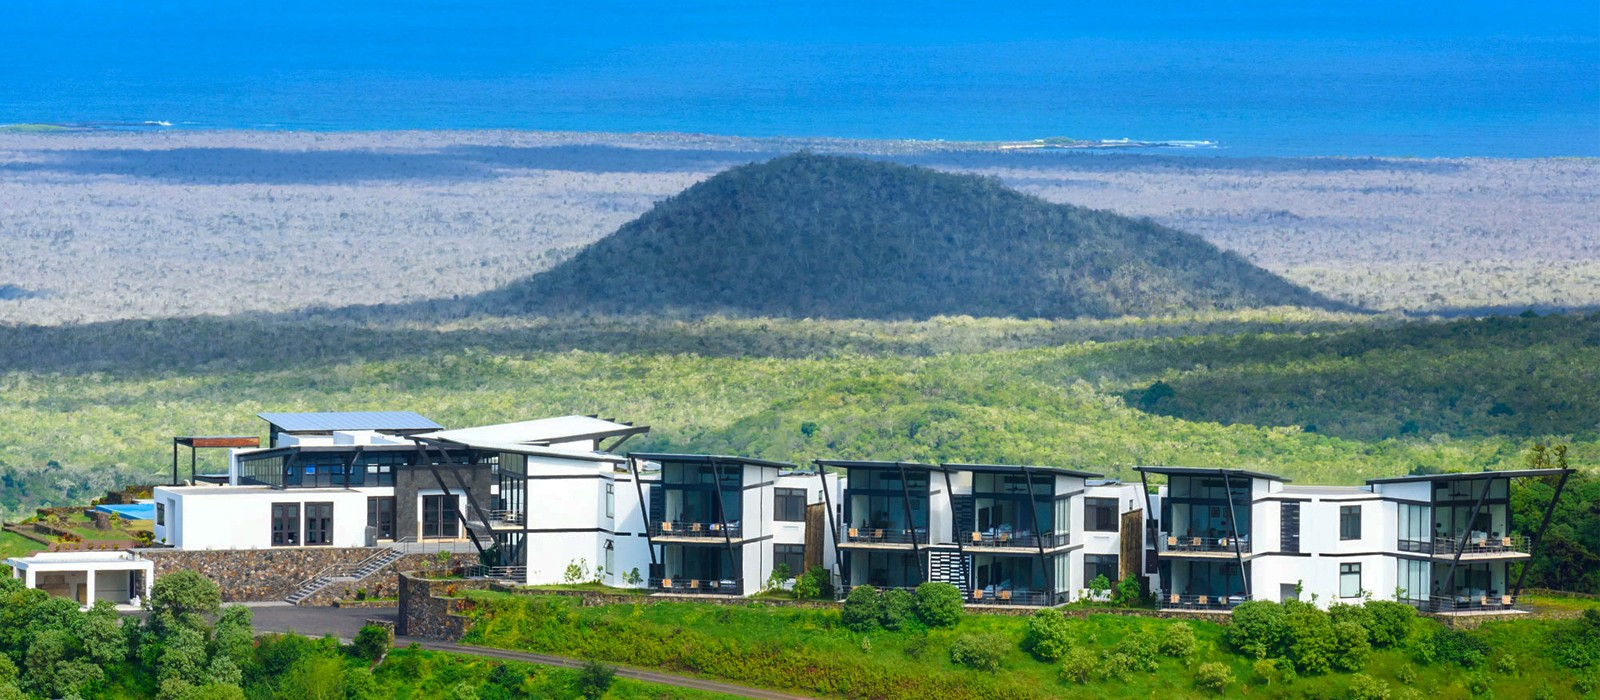 header - Pikaia Lodge Galapagos - Luxury Galapagos Holiday Packages